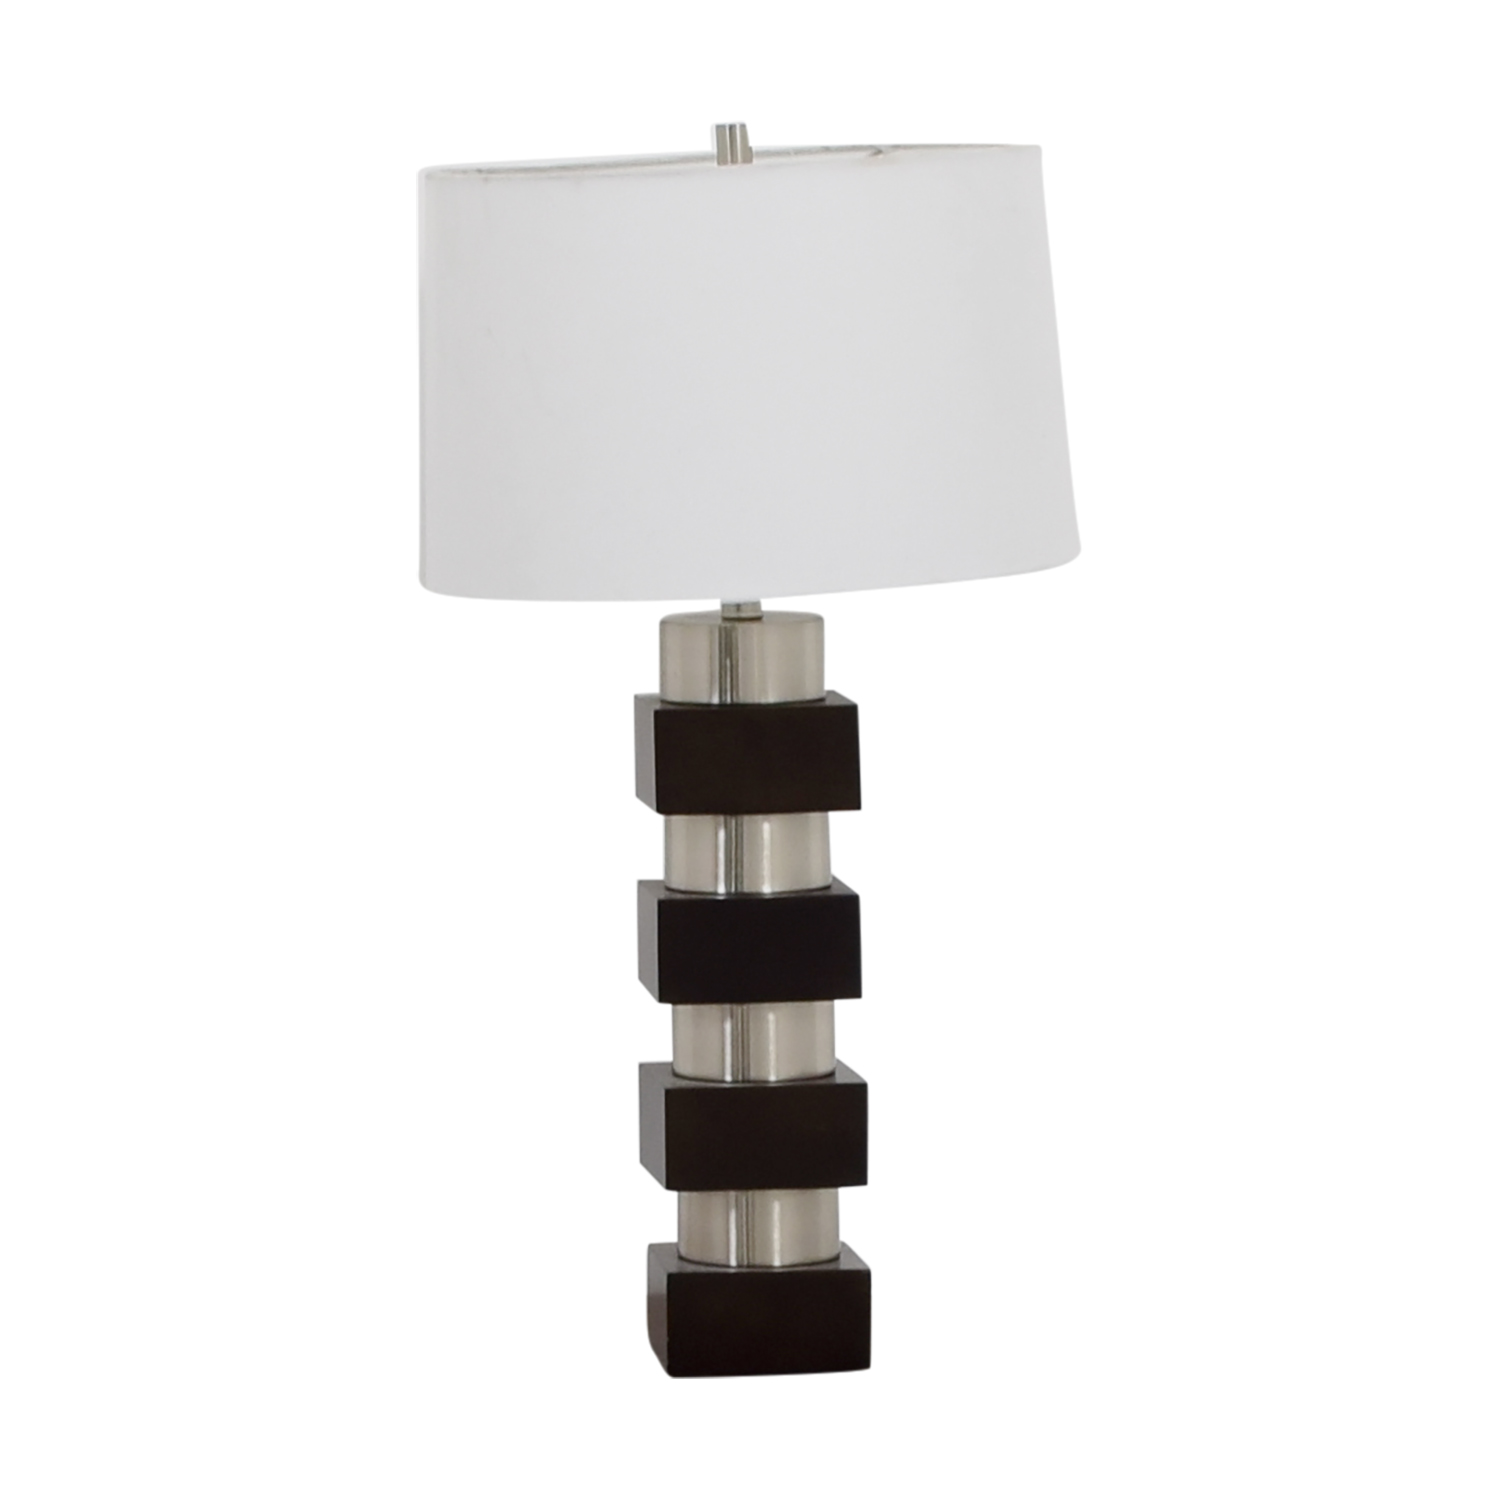 50 Off Black Silver And White Table Lamp Decor